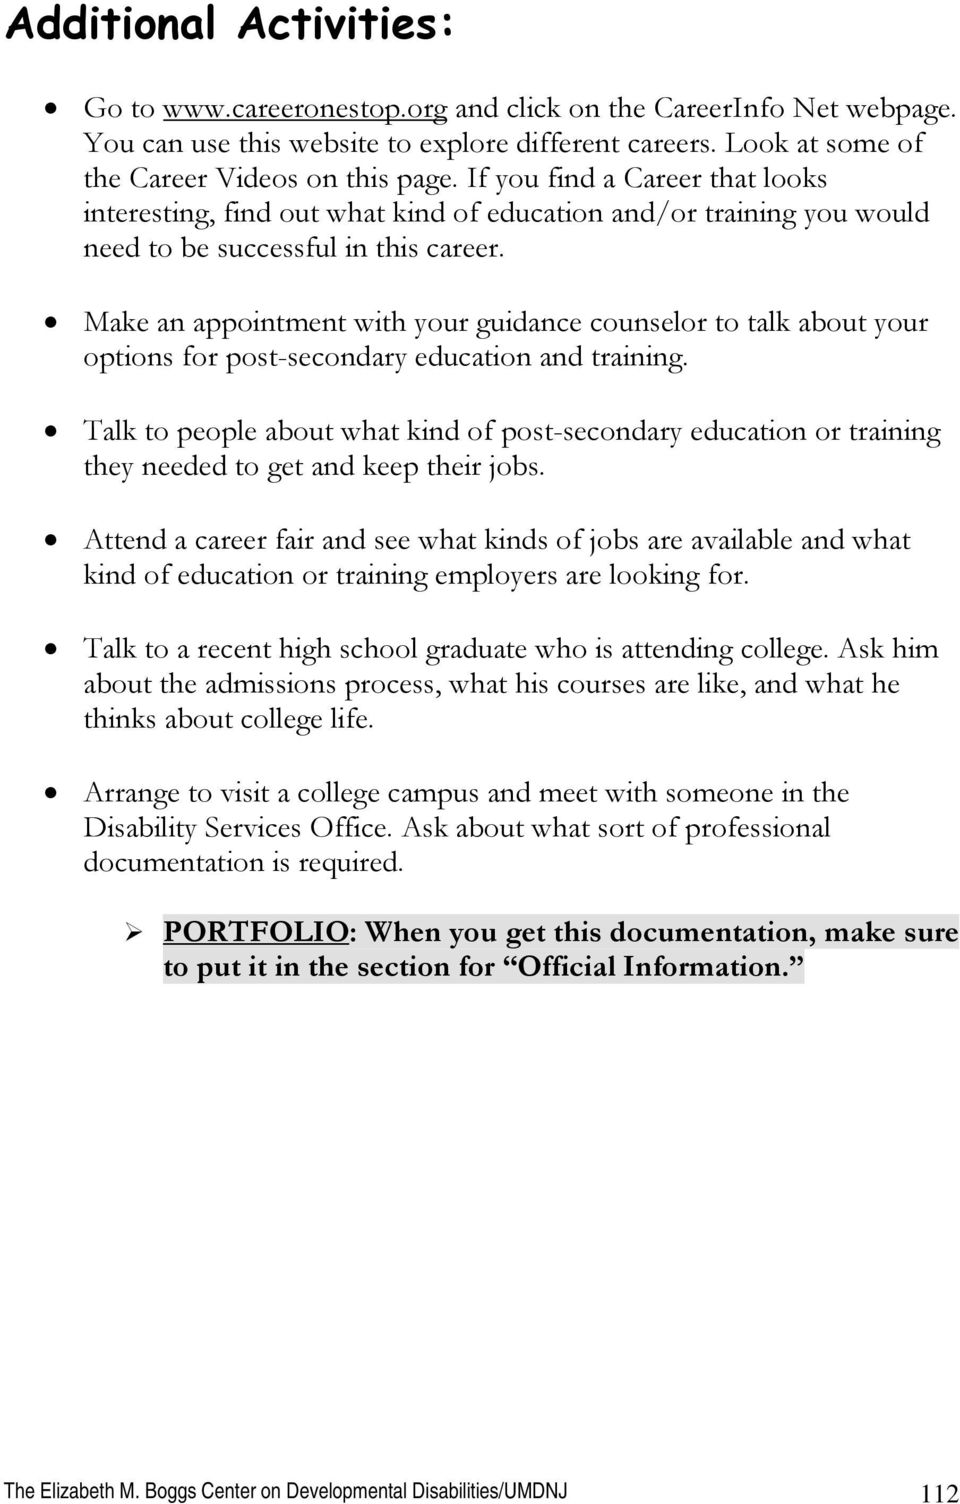 Make an appointment with your guidance counselor to talk about your options for post-secondary education and training.